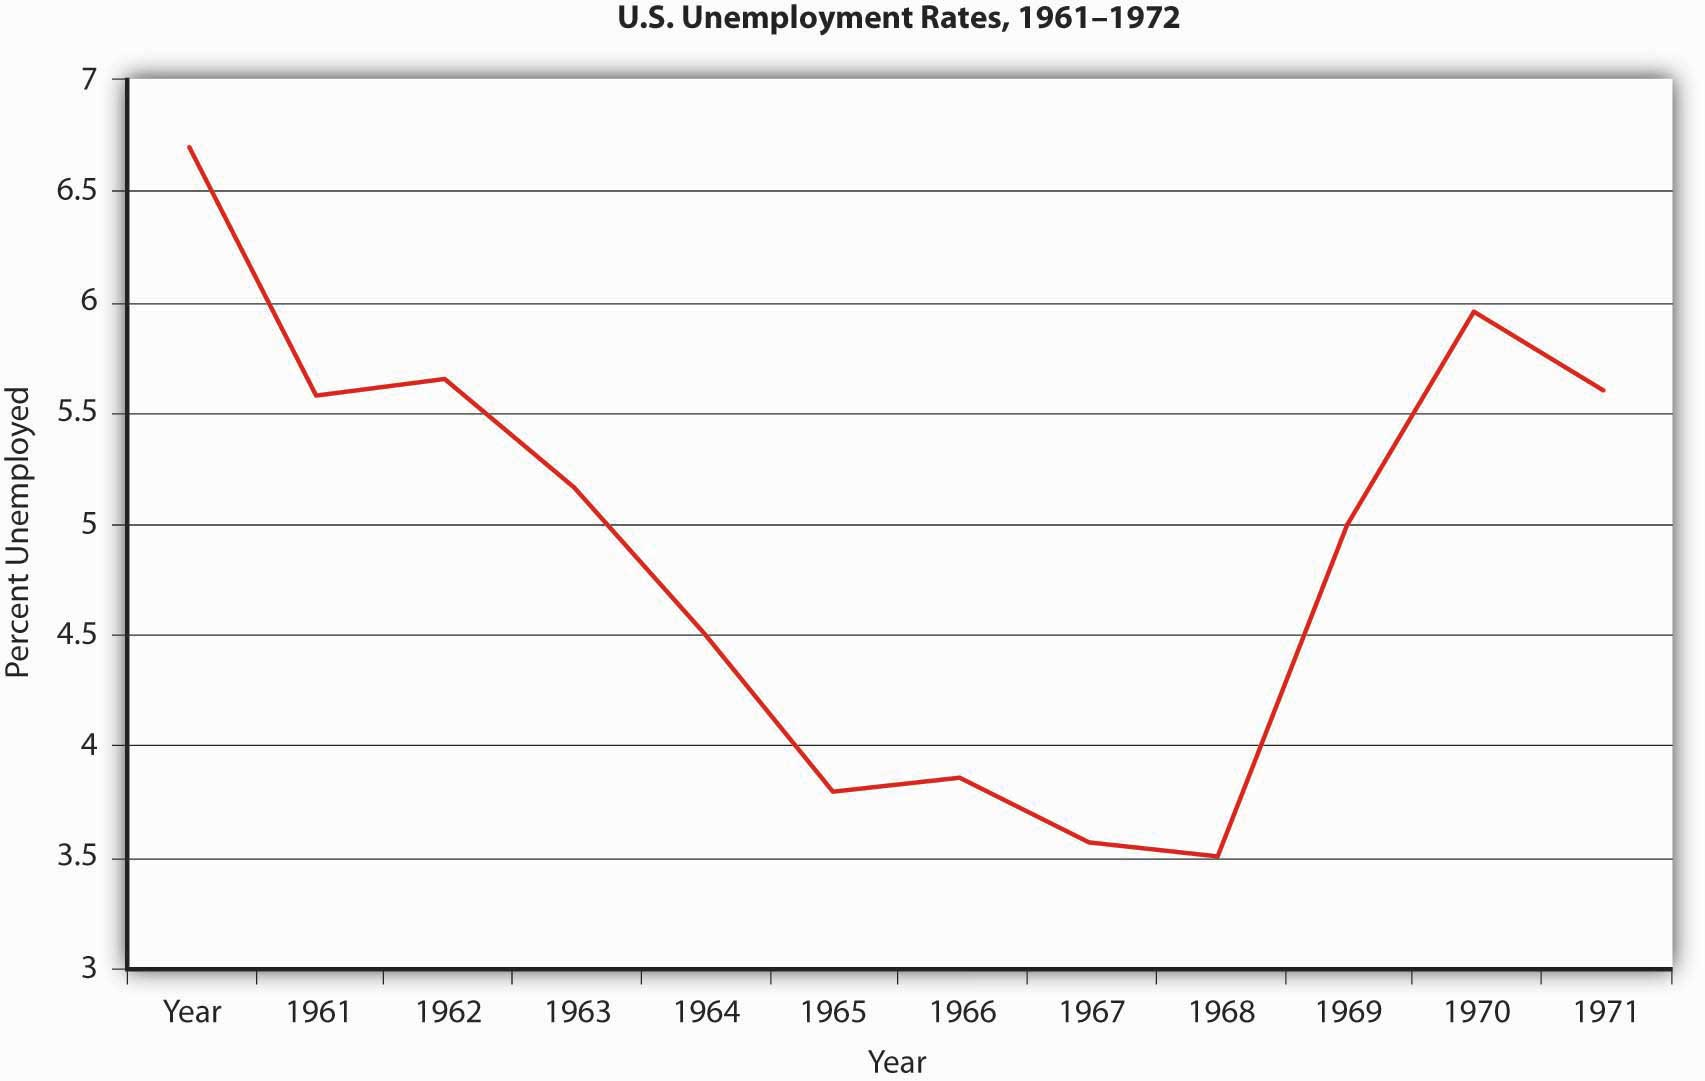 inflation and money figure 25 4 u s unemployment rates 1961 1972